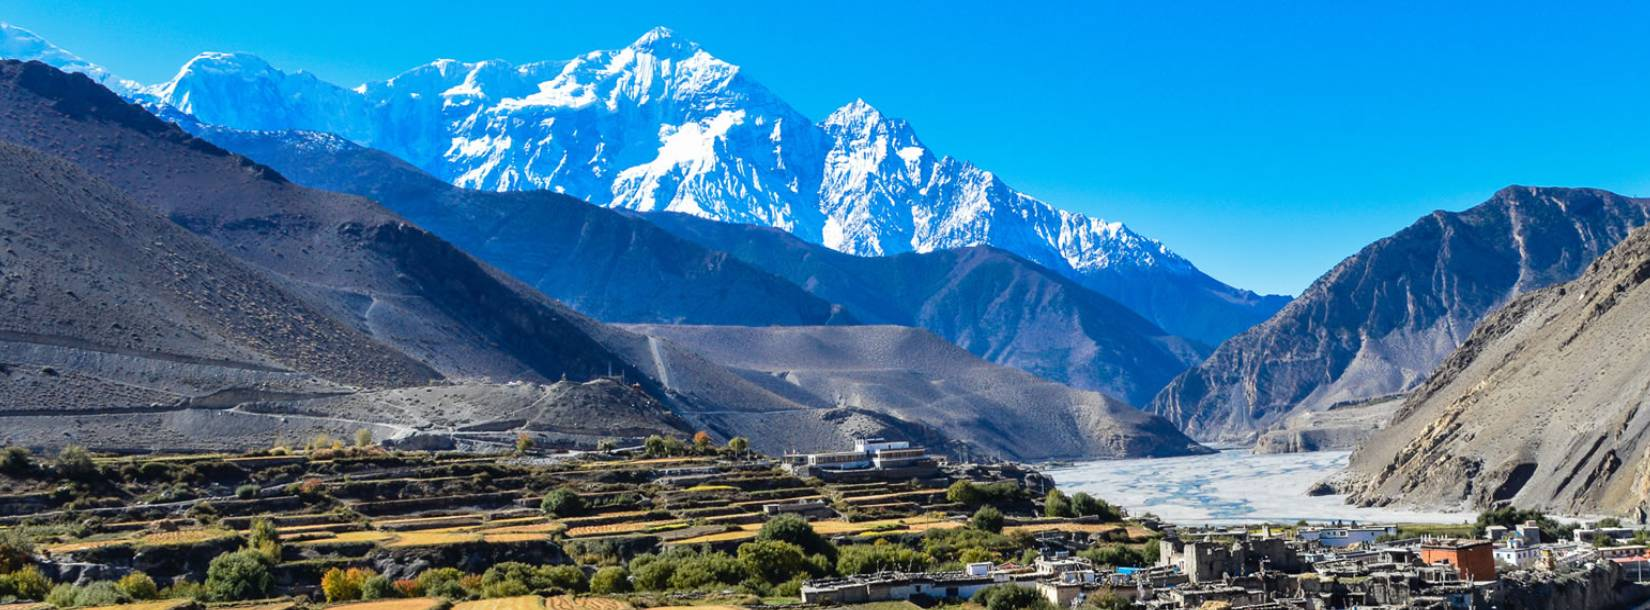 Muktinath Temple Tour | A Peace of Heaven | A Pilgrimage Place of Buddhist and Hindusm